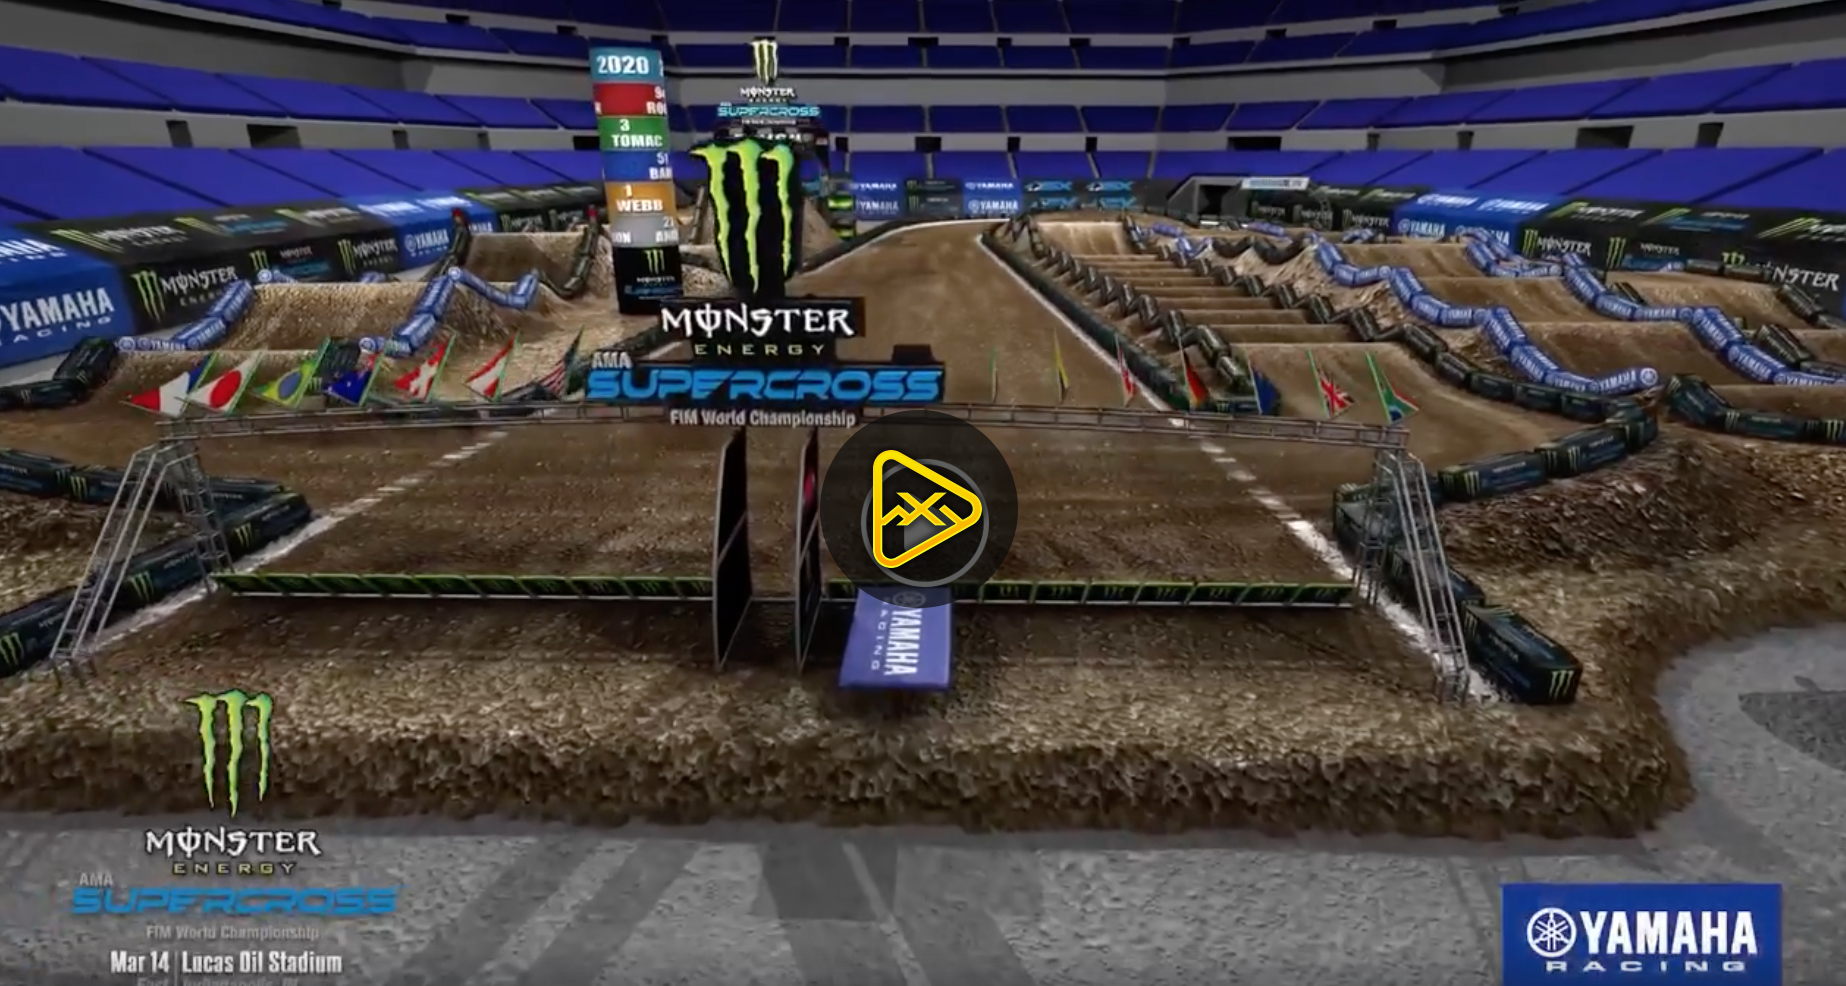 2020 Indianapolis SX Animated Track Map